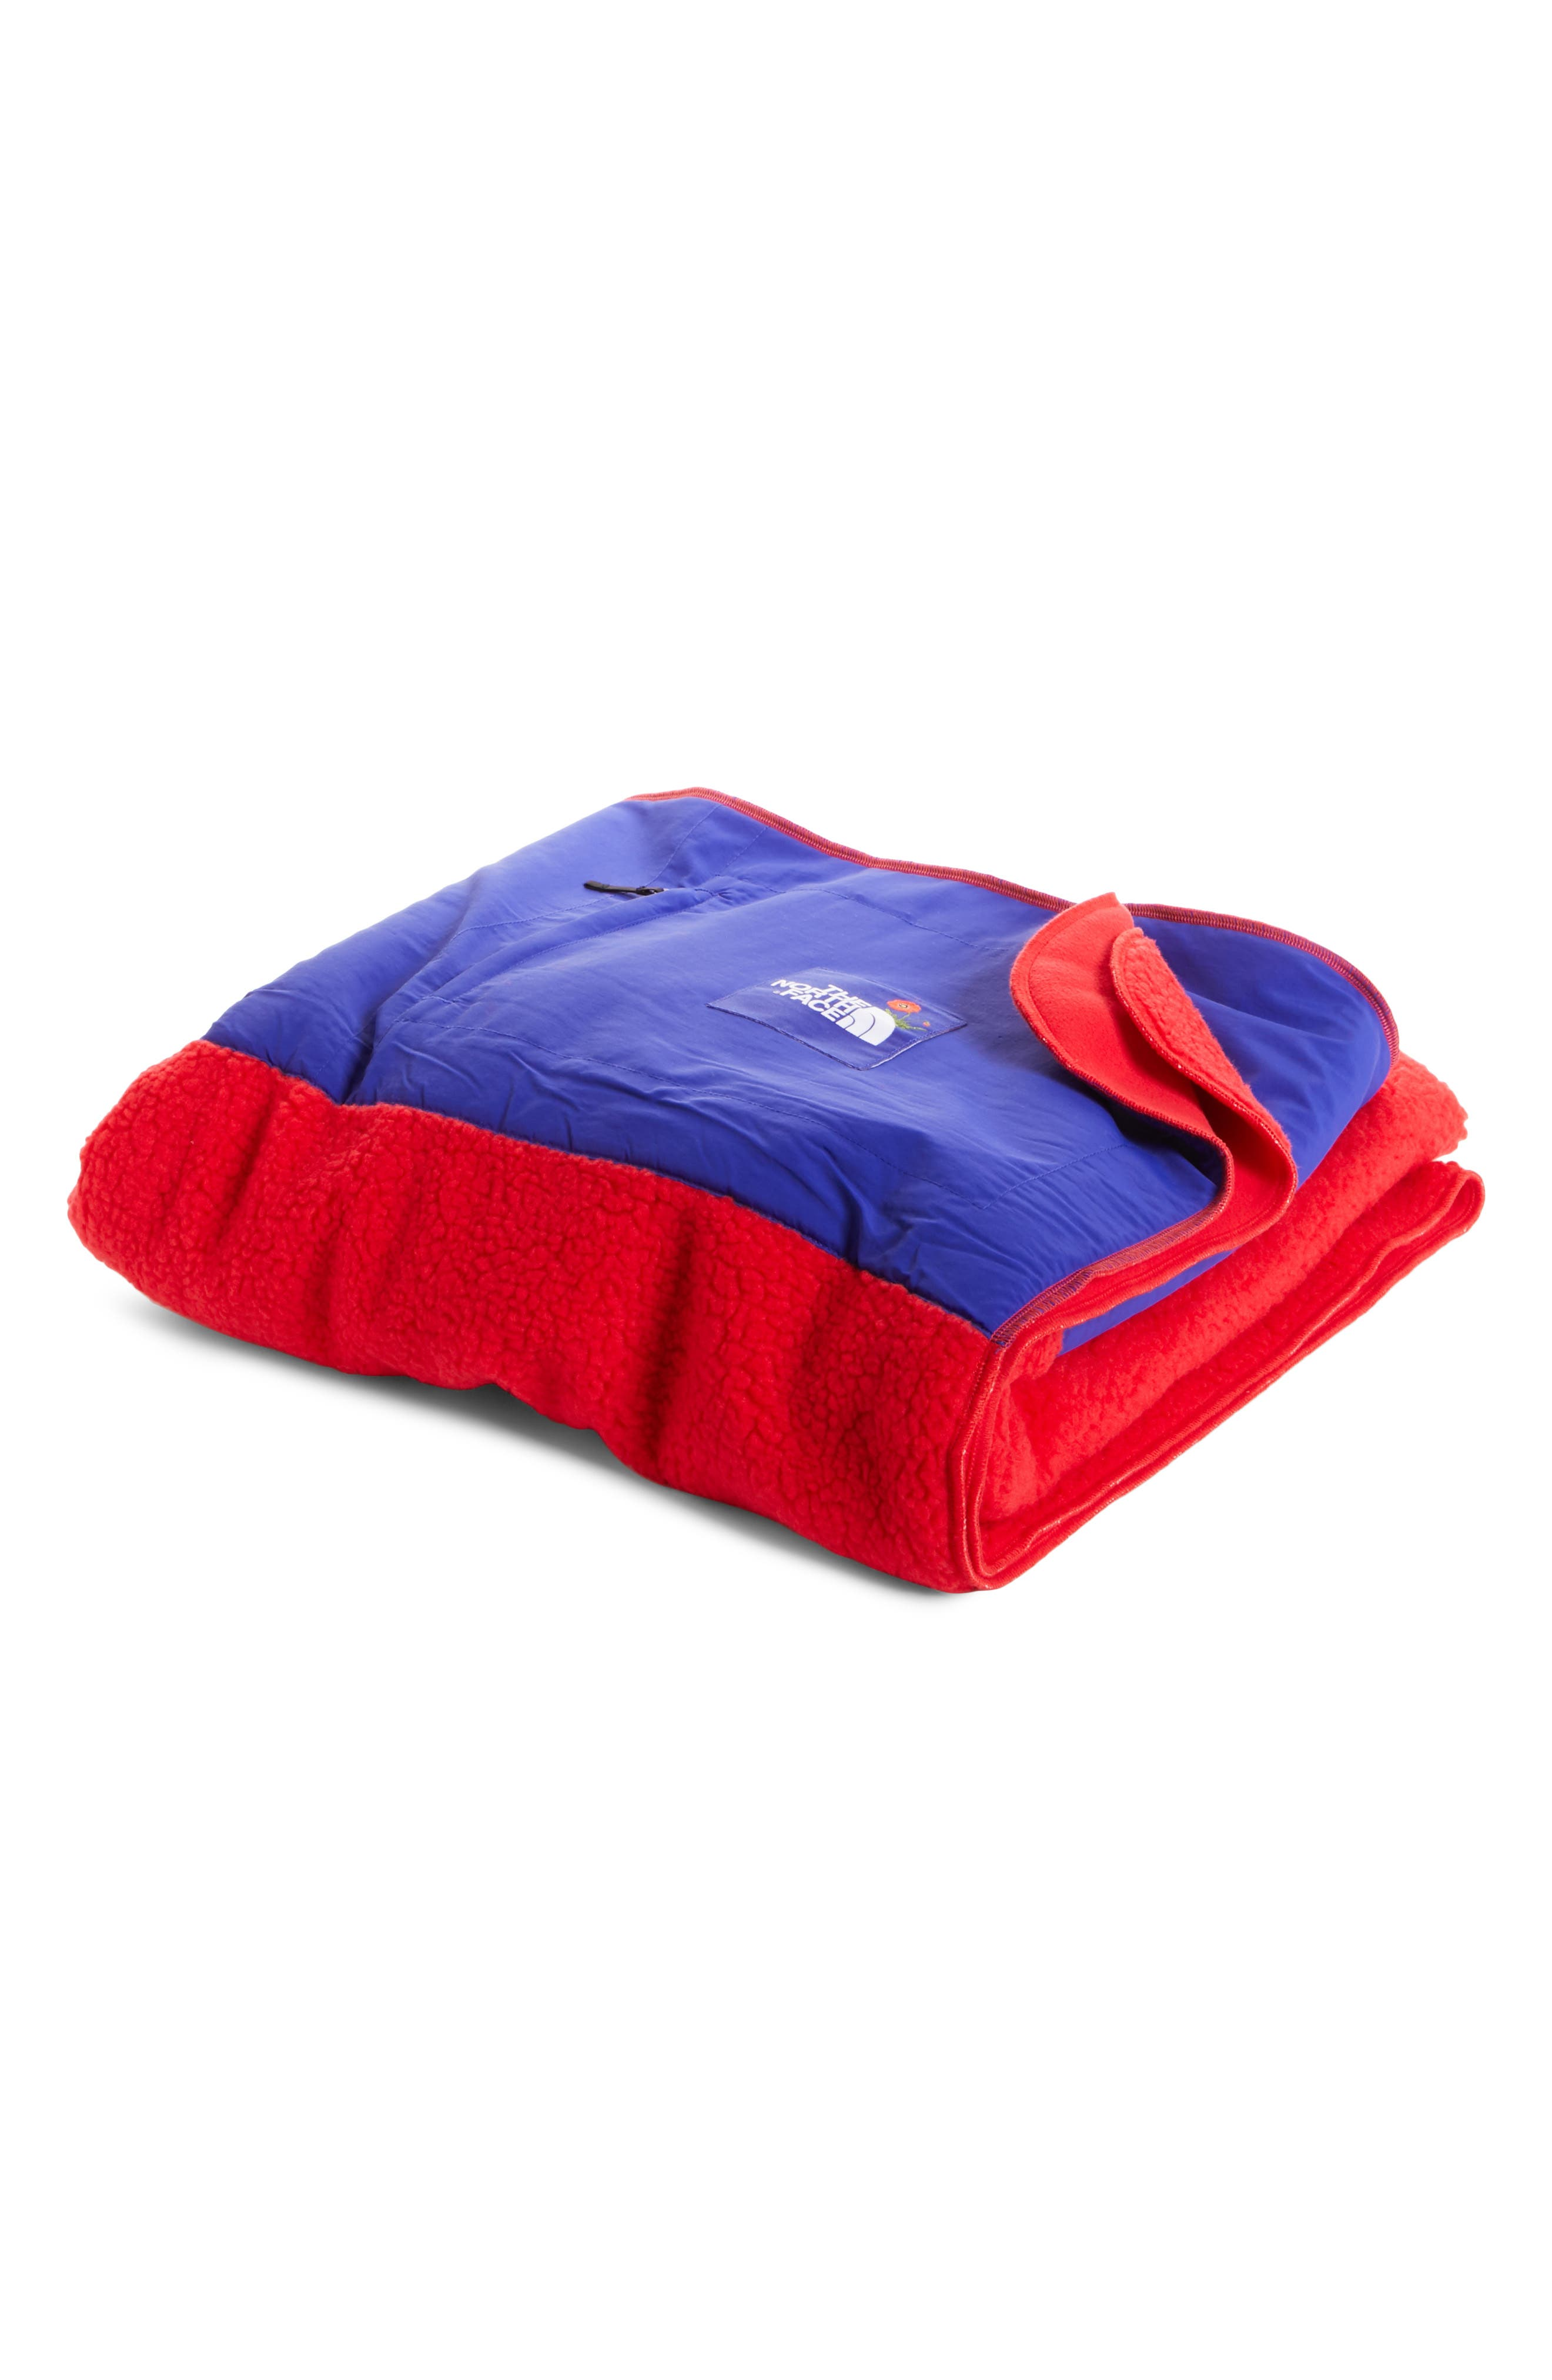 The North Face Blanket